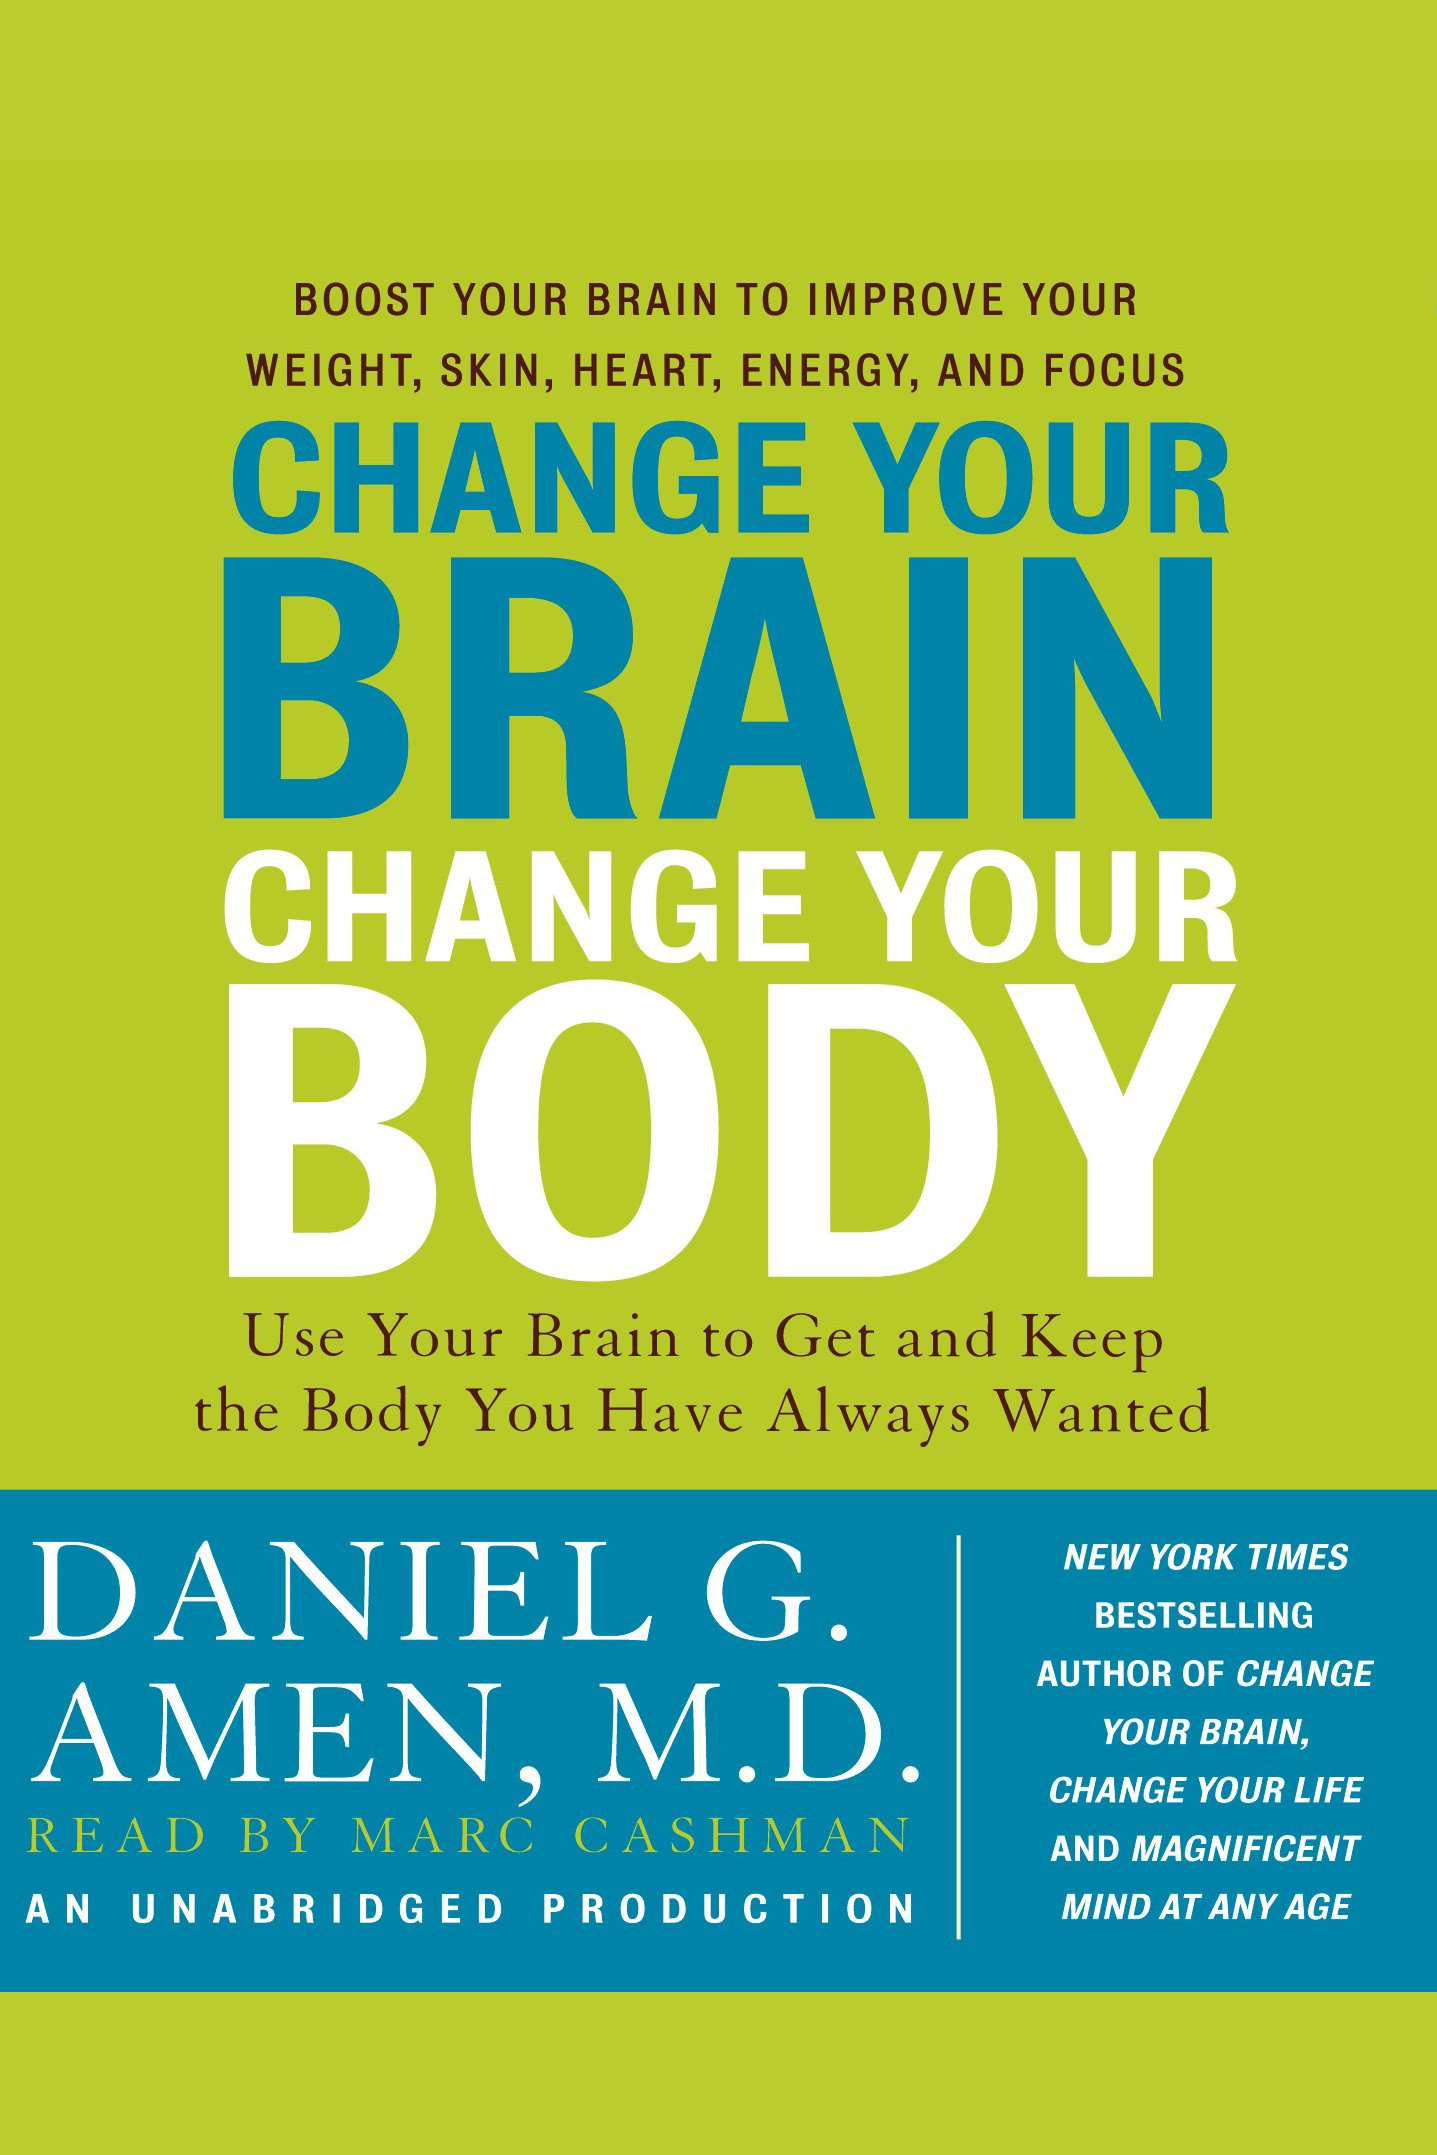 Change your brain, change your body use your brain to get and keep the body you have always wanted cover image